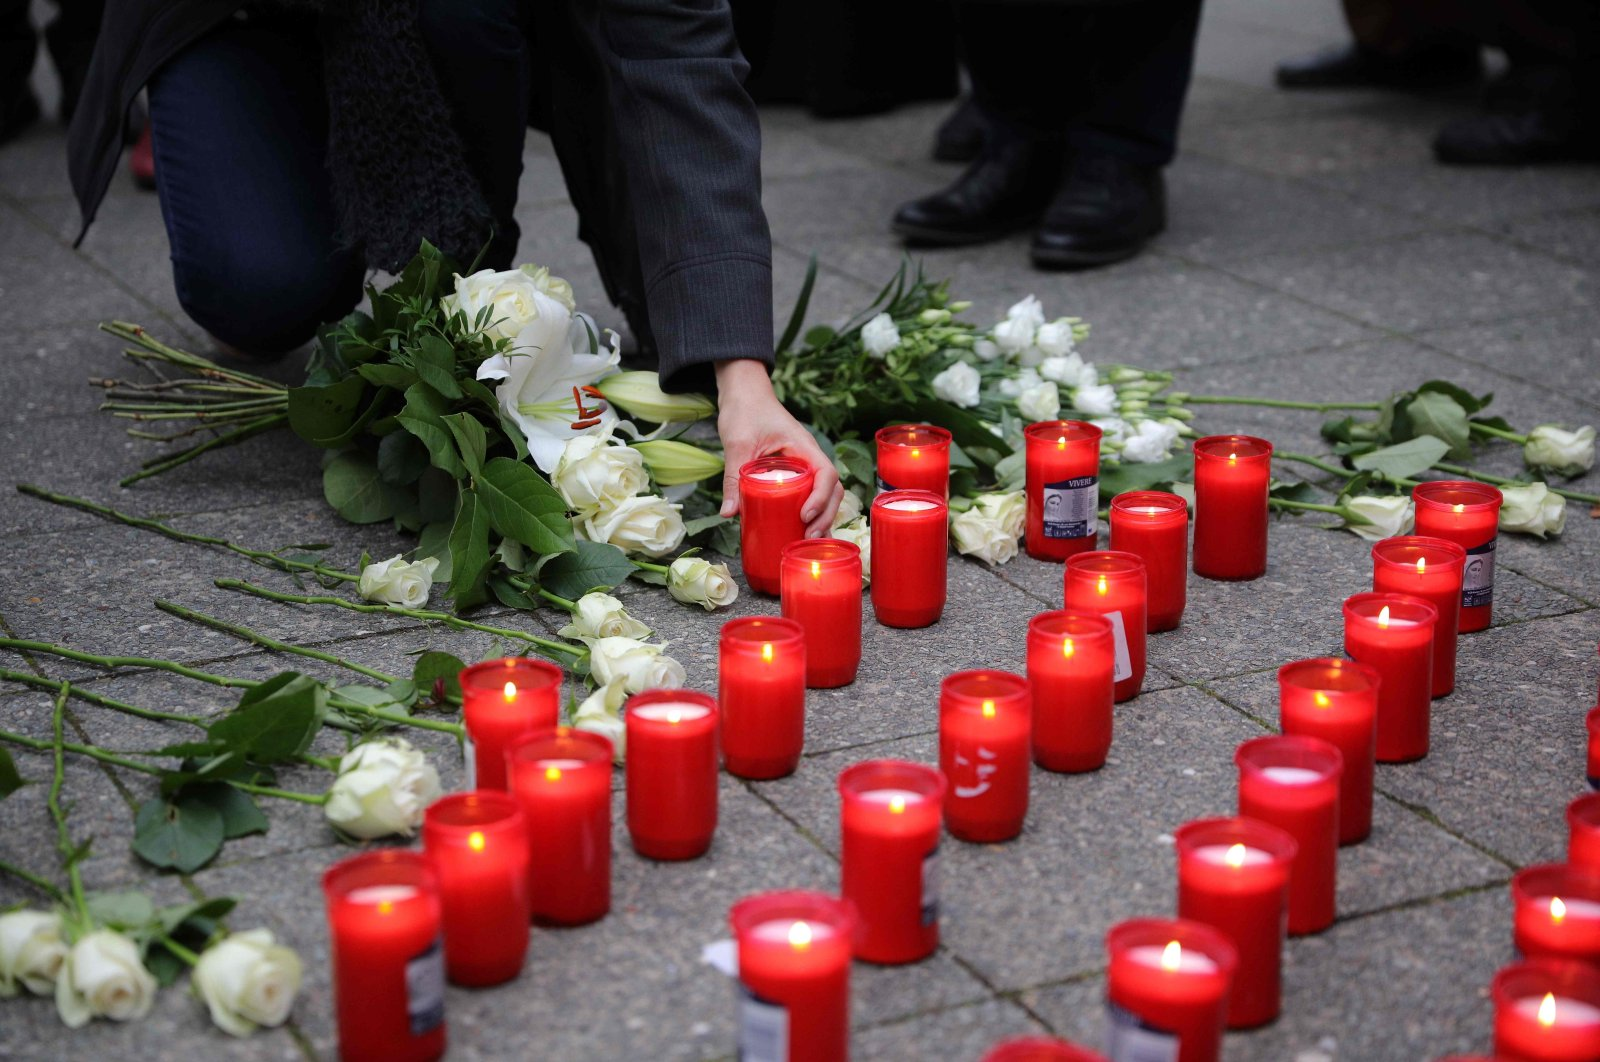 A man lights candles at a vigil remembering the victims of the terrorist attack in Vienna, outside the Austrian embassy in Berlin, Germany, on Nov. 6, 2020. (AFP Photo)